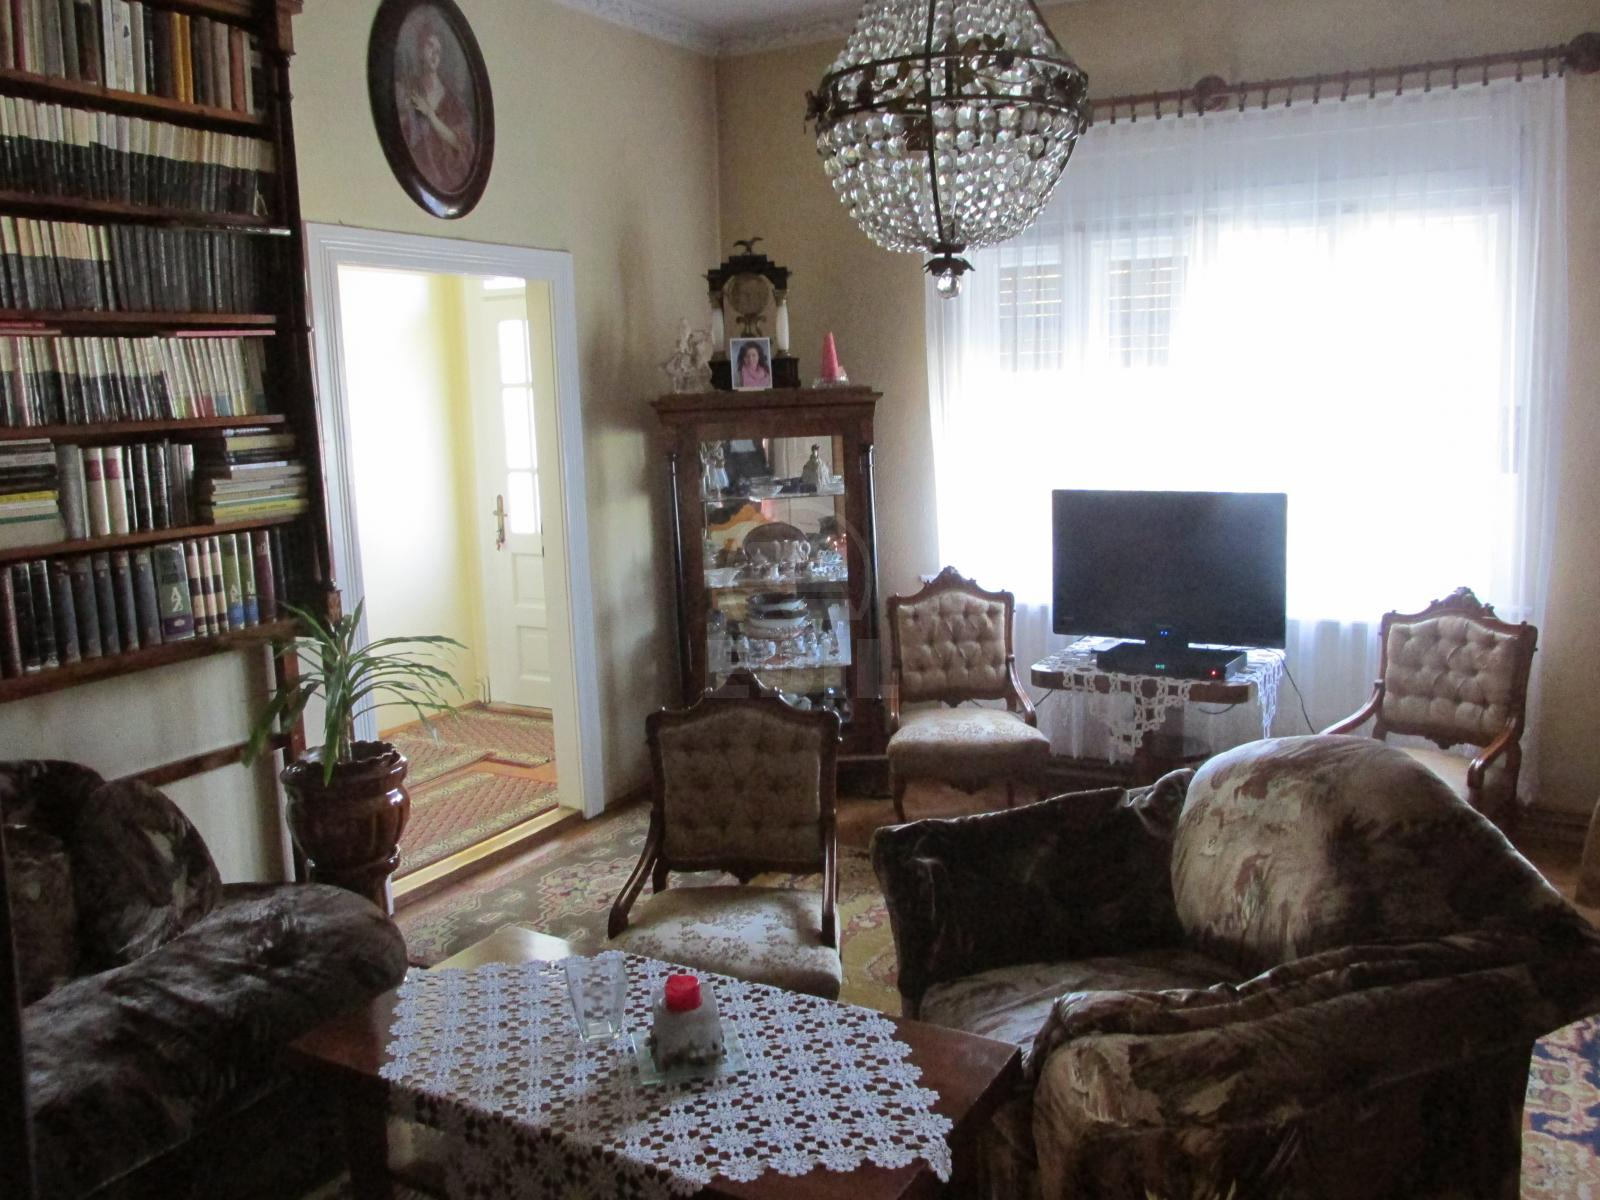 House for sale 6 rooms, CACJ274470-22